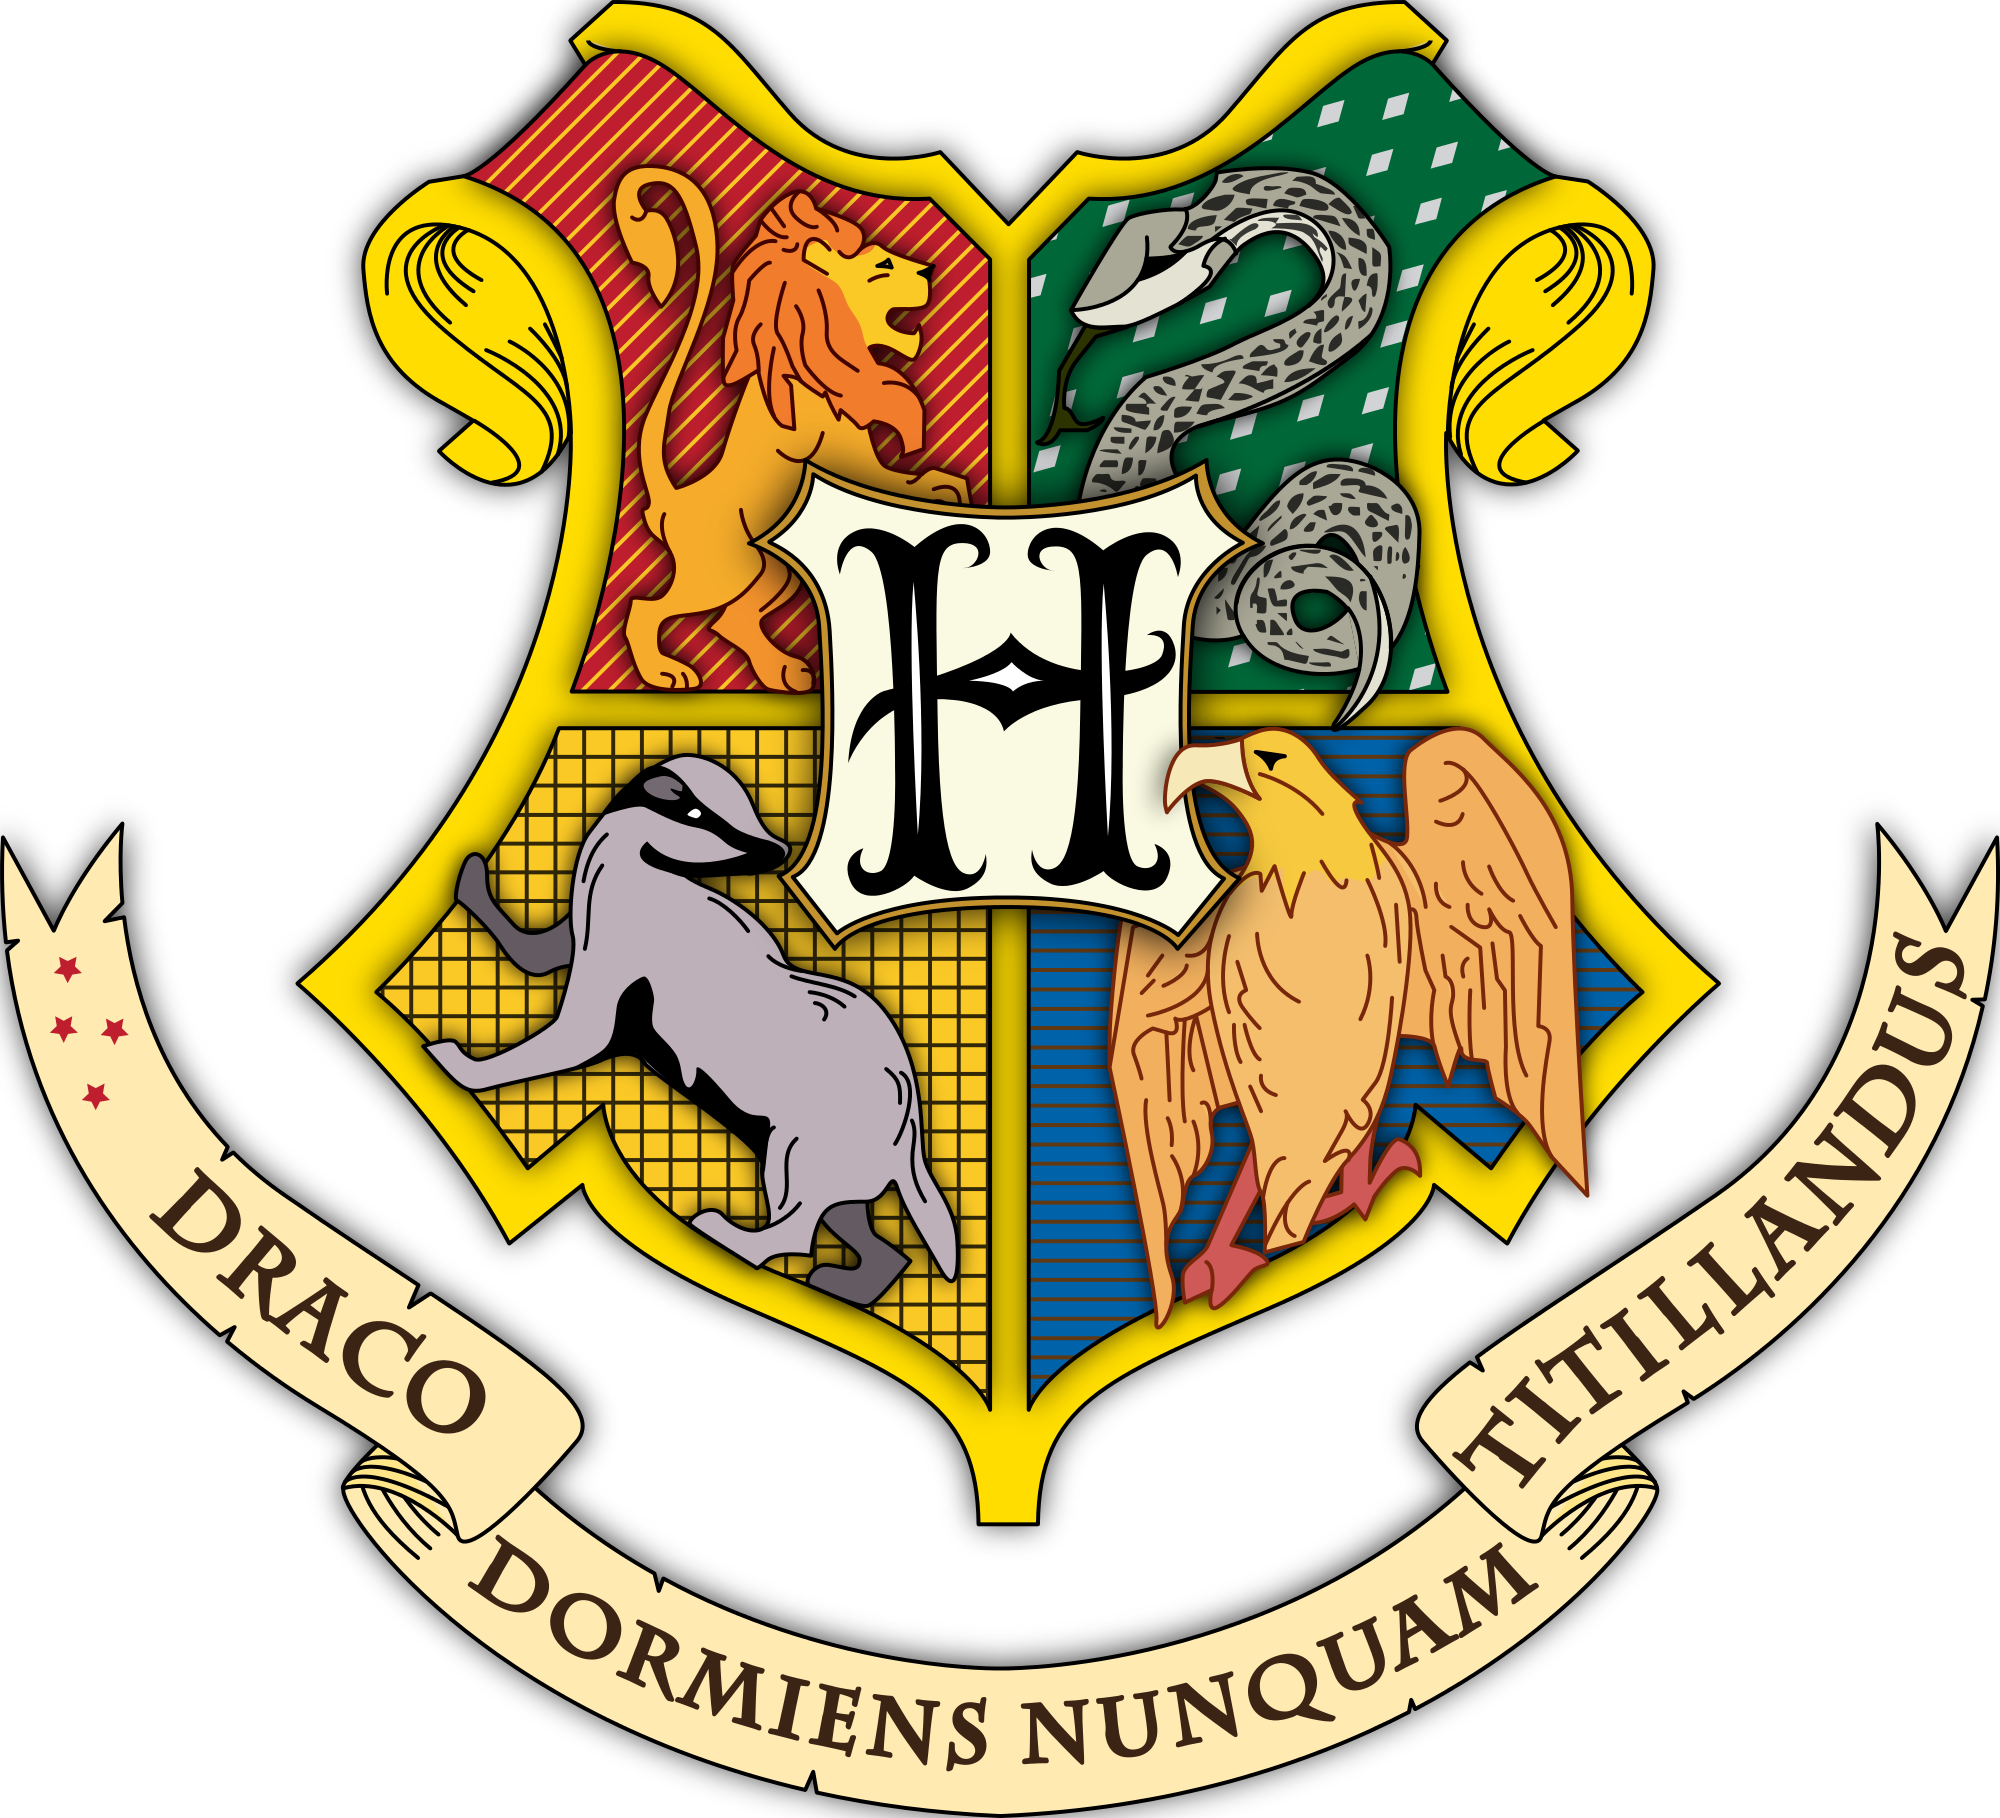 Crest png clear background. Hogwarts transparent check all